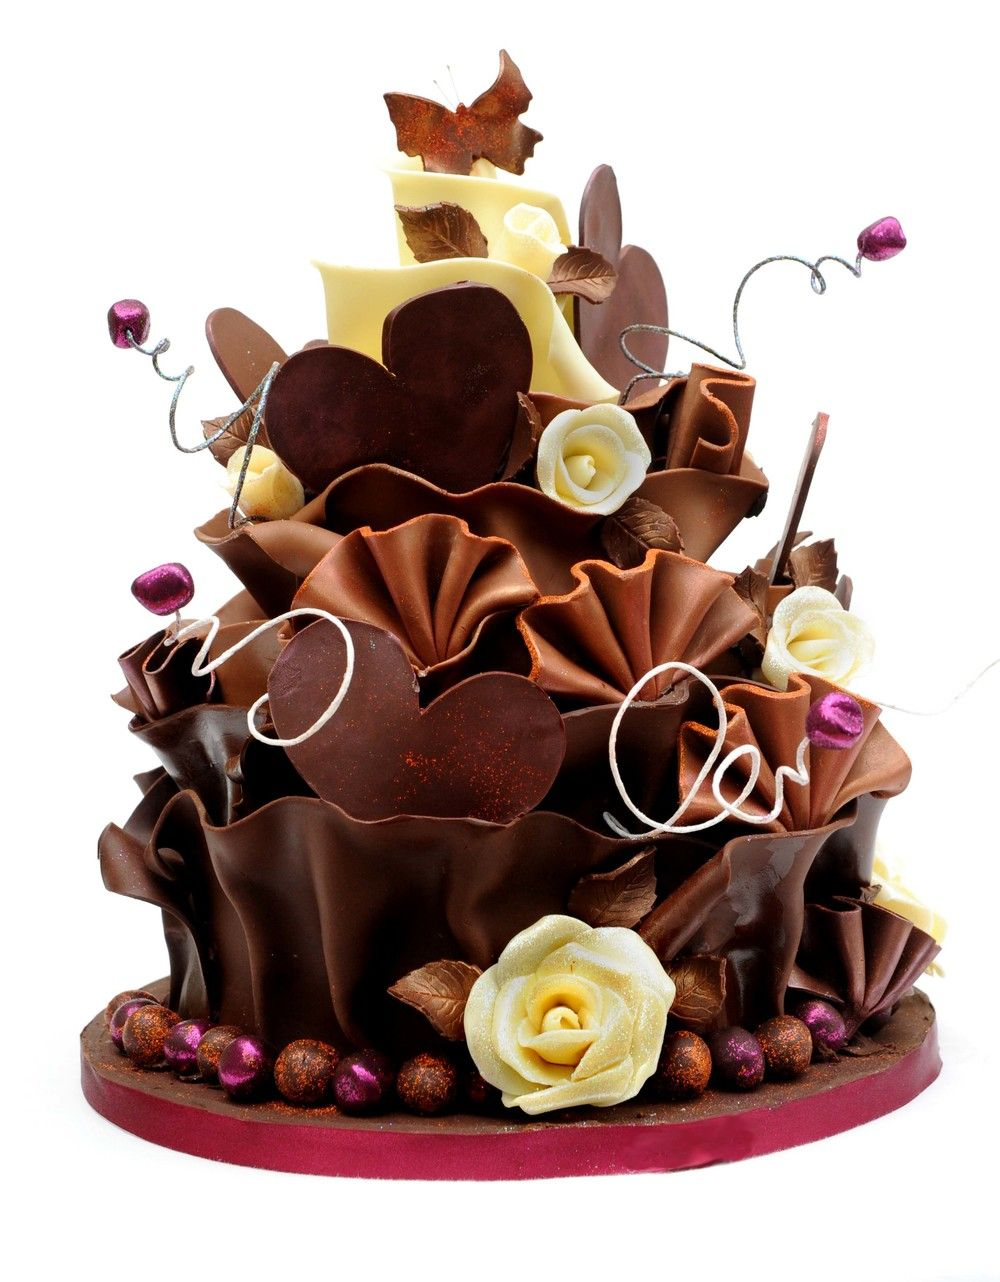 Most Beautiful Chocolate Birthday Cakes Ever Most Beautiful